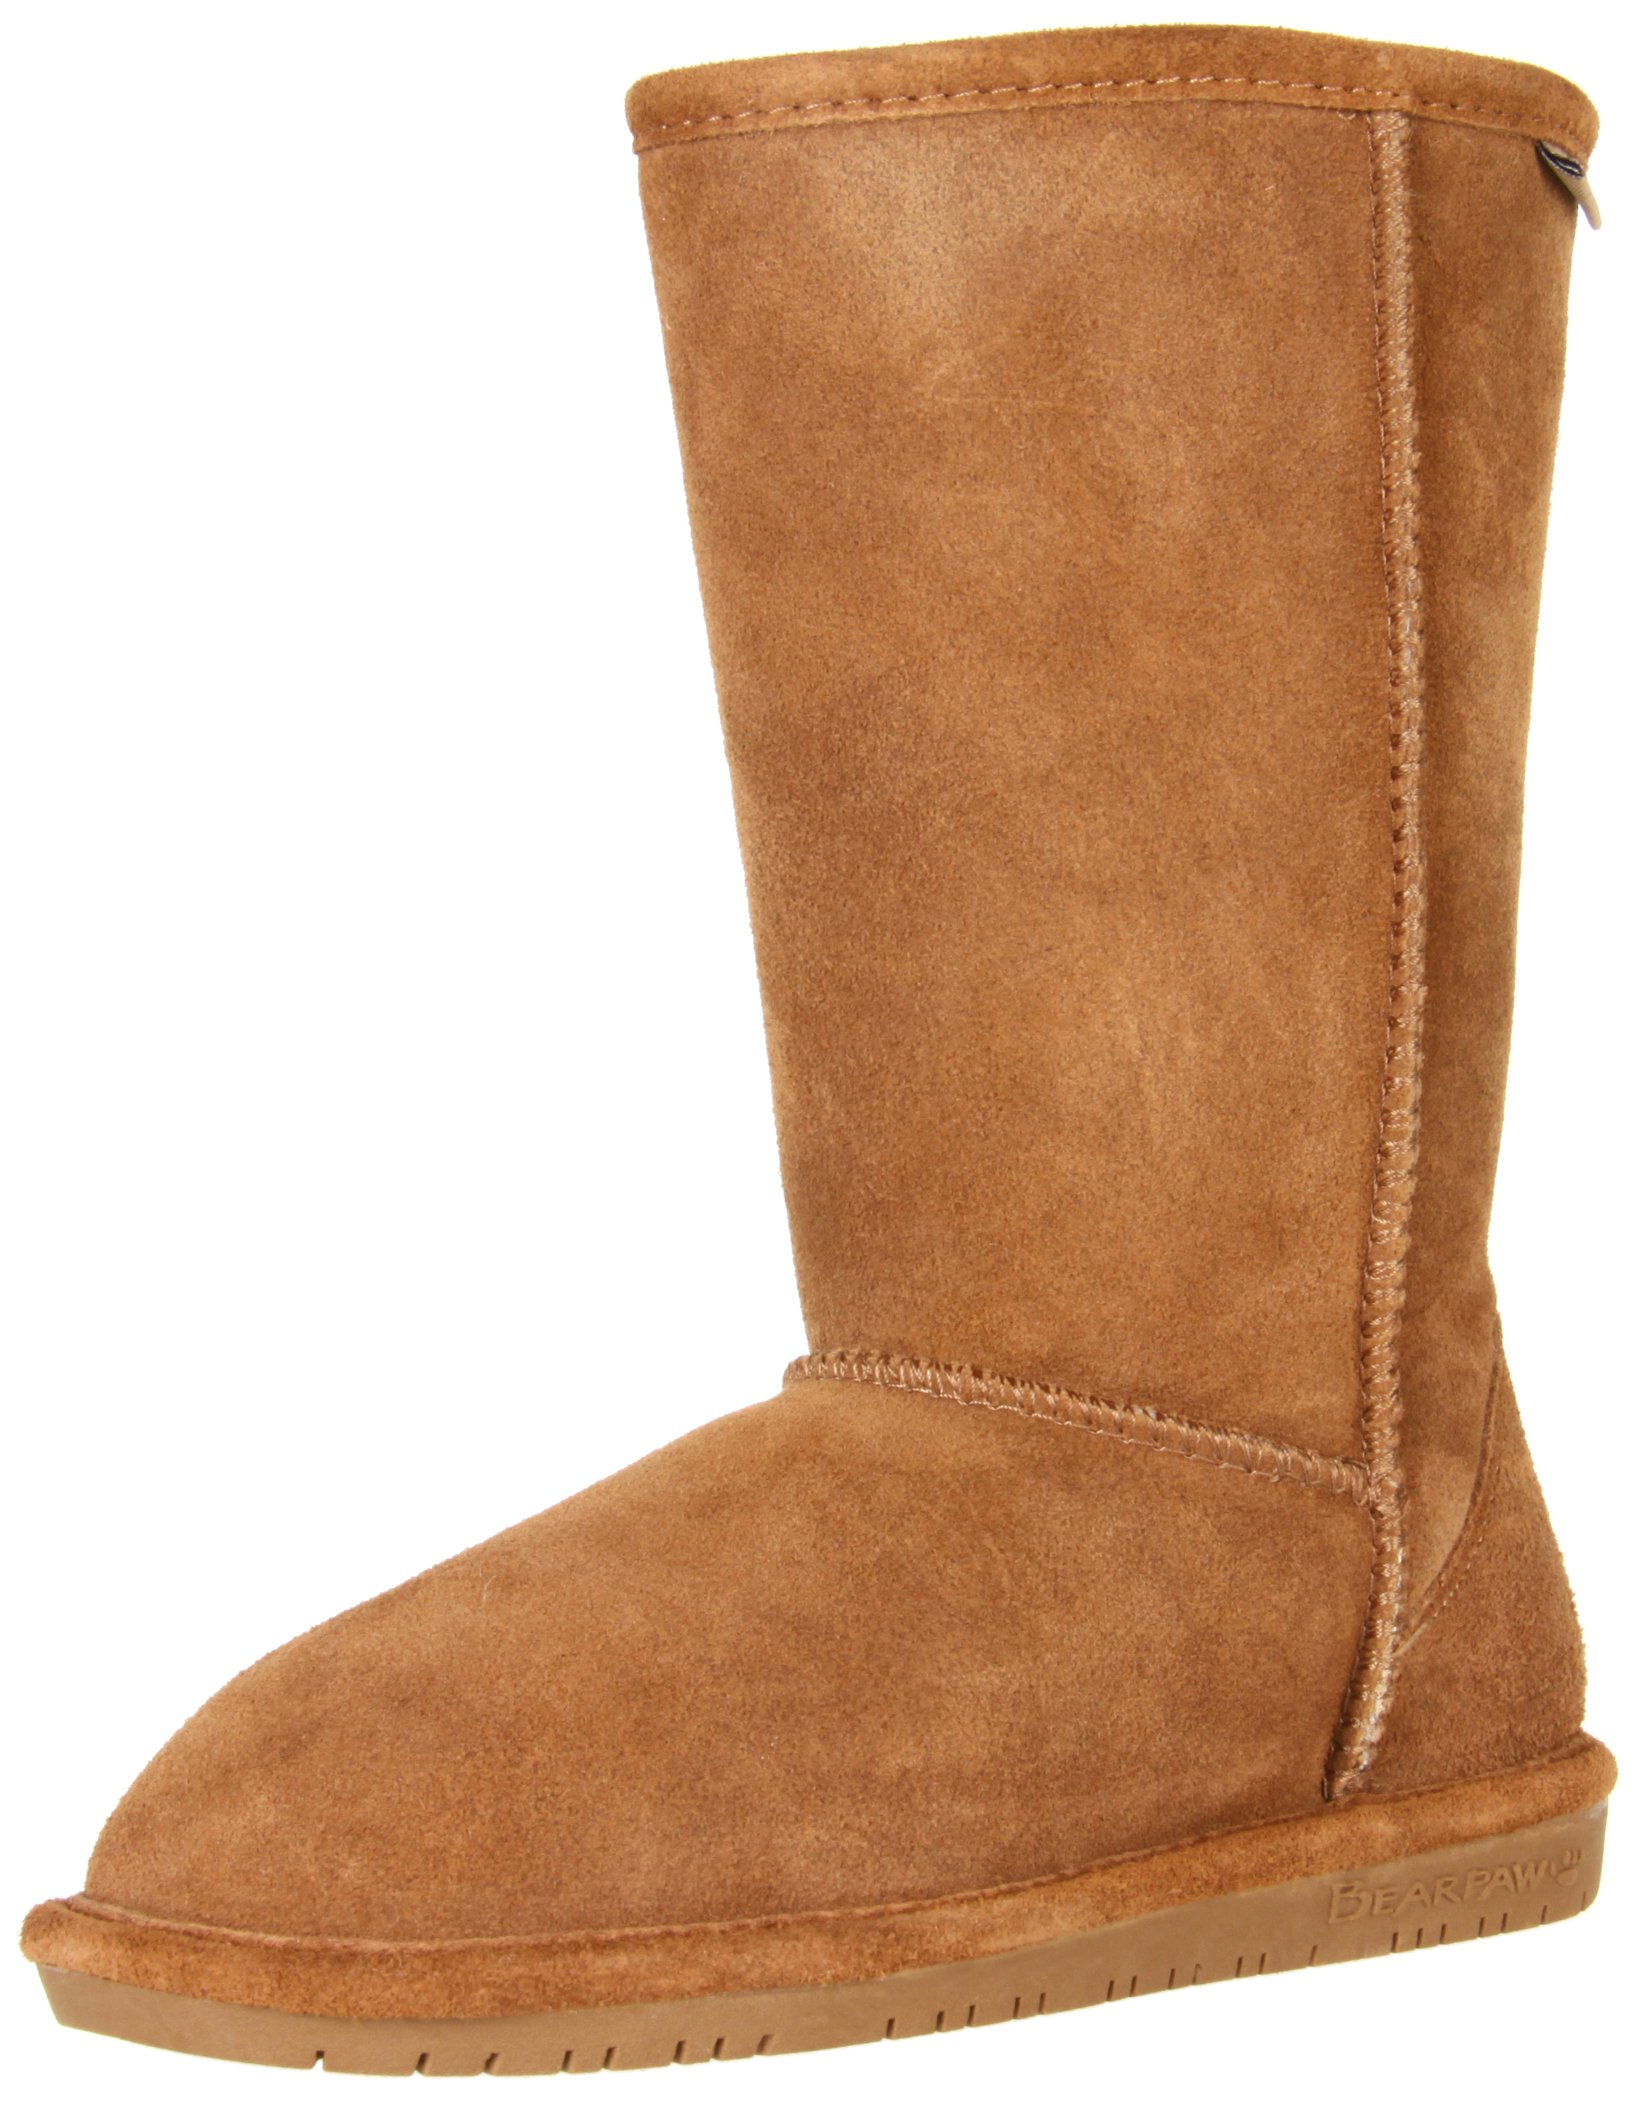 BEARPAW  Emma Tall Youth Boot,Hickory/Champagne,11 M US Little Kid